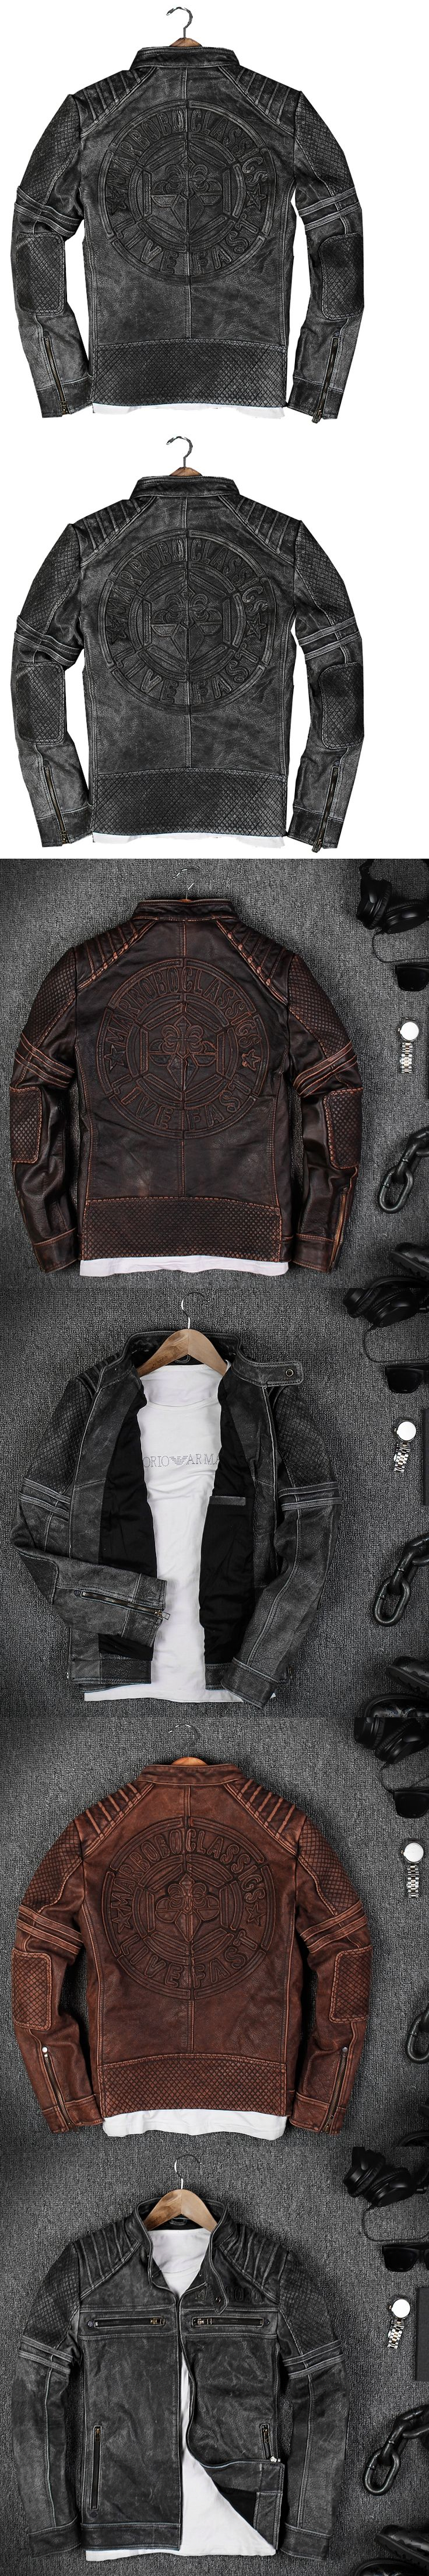 2018 Vintage Black Genuine Leather Mens Motorcycle Jacket Plus Size 3XL Slim Fit Thick Cowhide Winter Leather Coat FREE SHIPPING